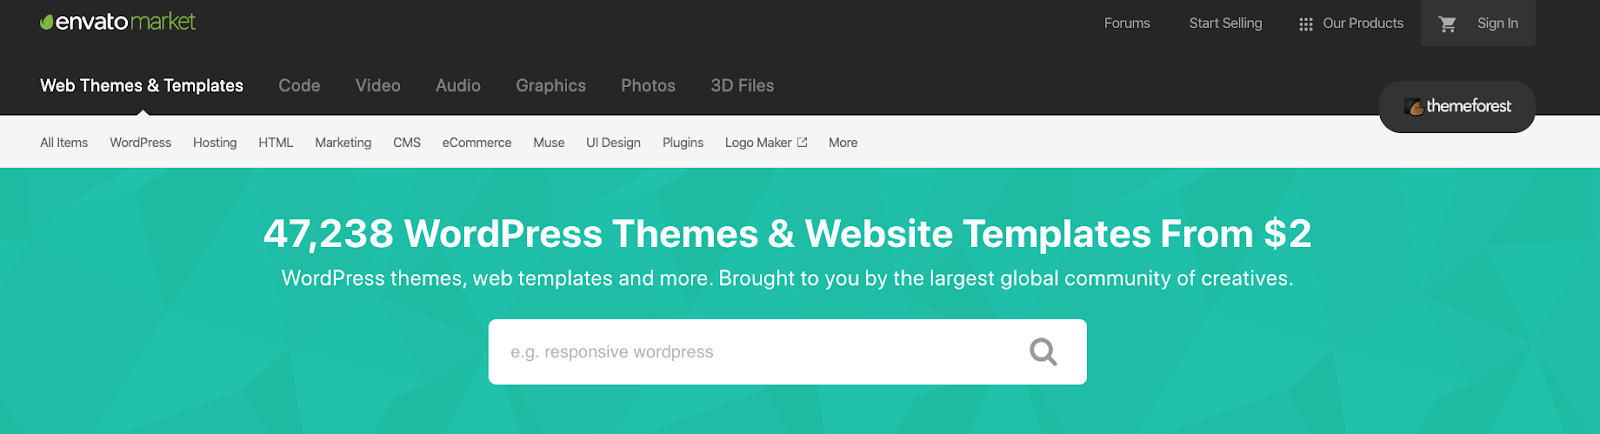 envato market WordPress themes and website templates